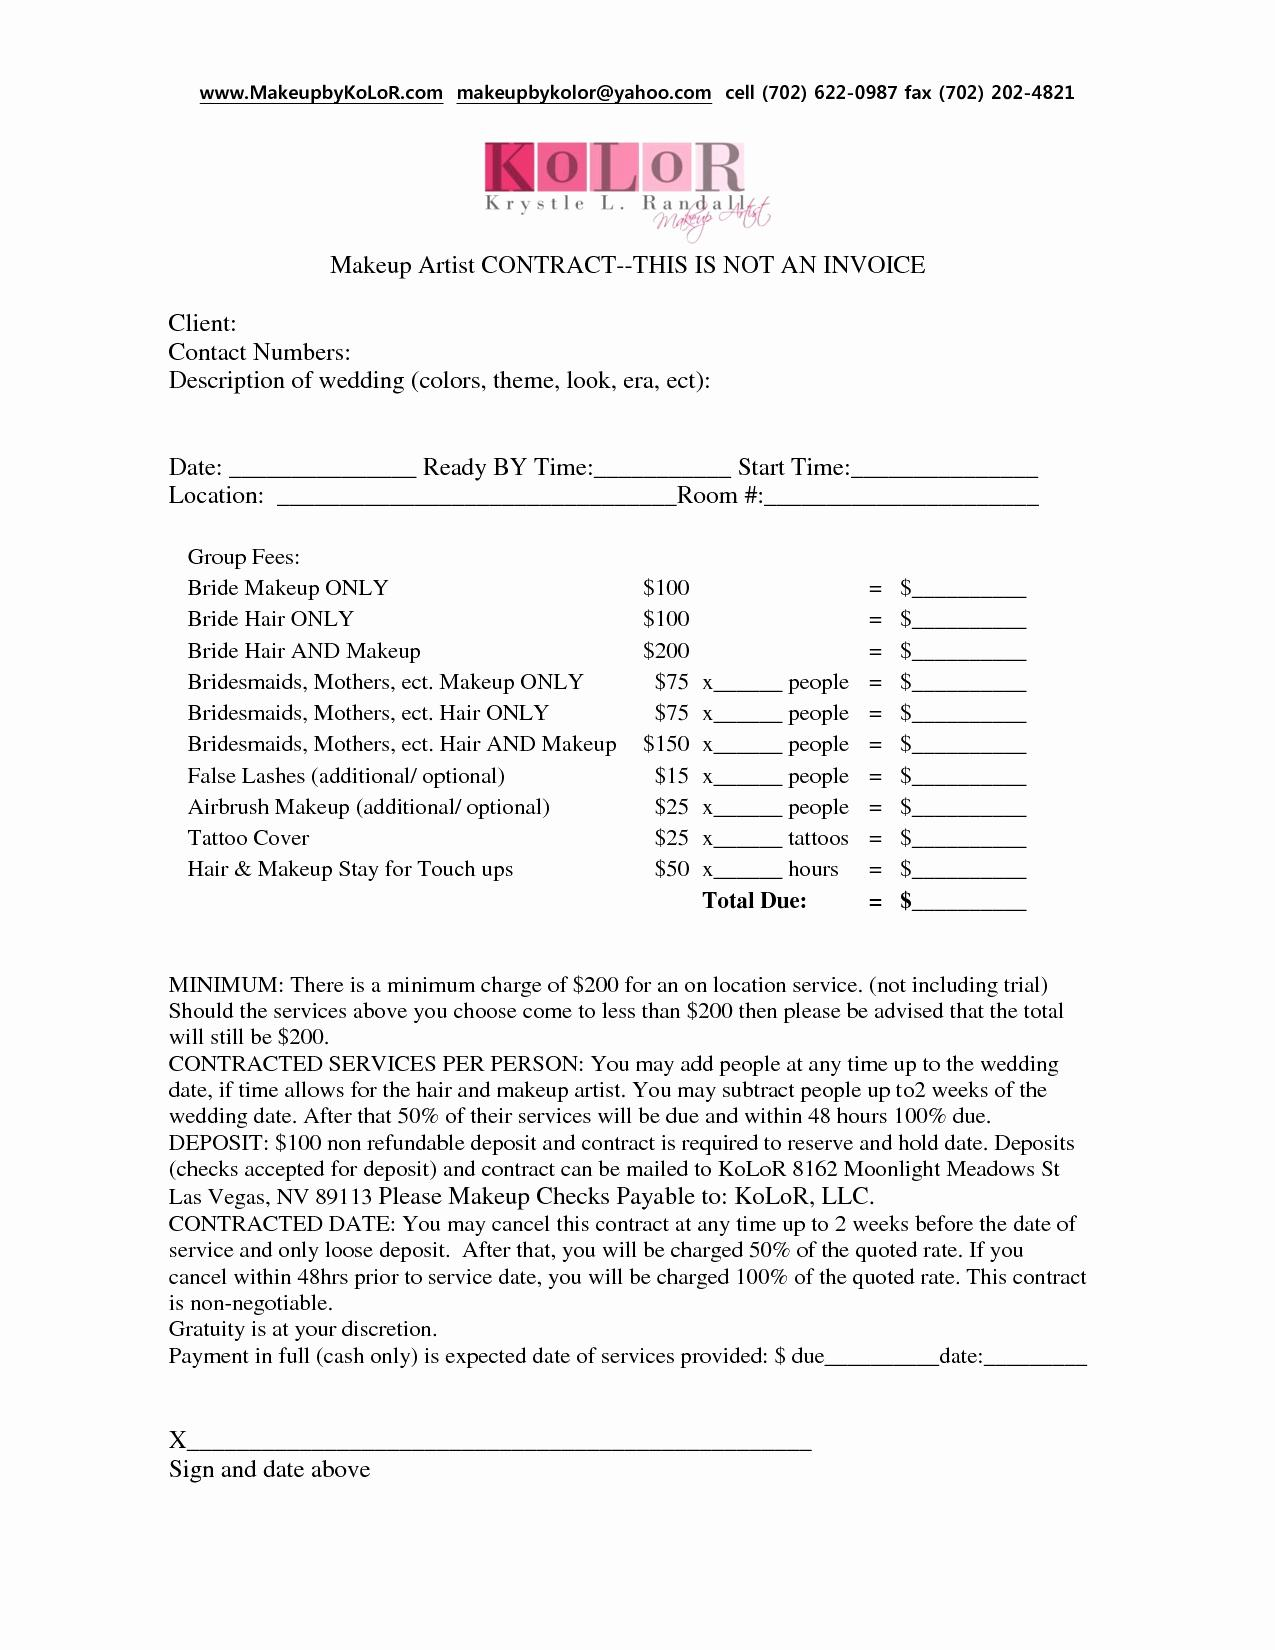 Bridal Contract Template